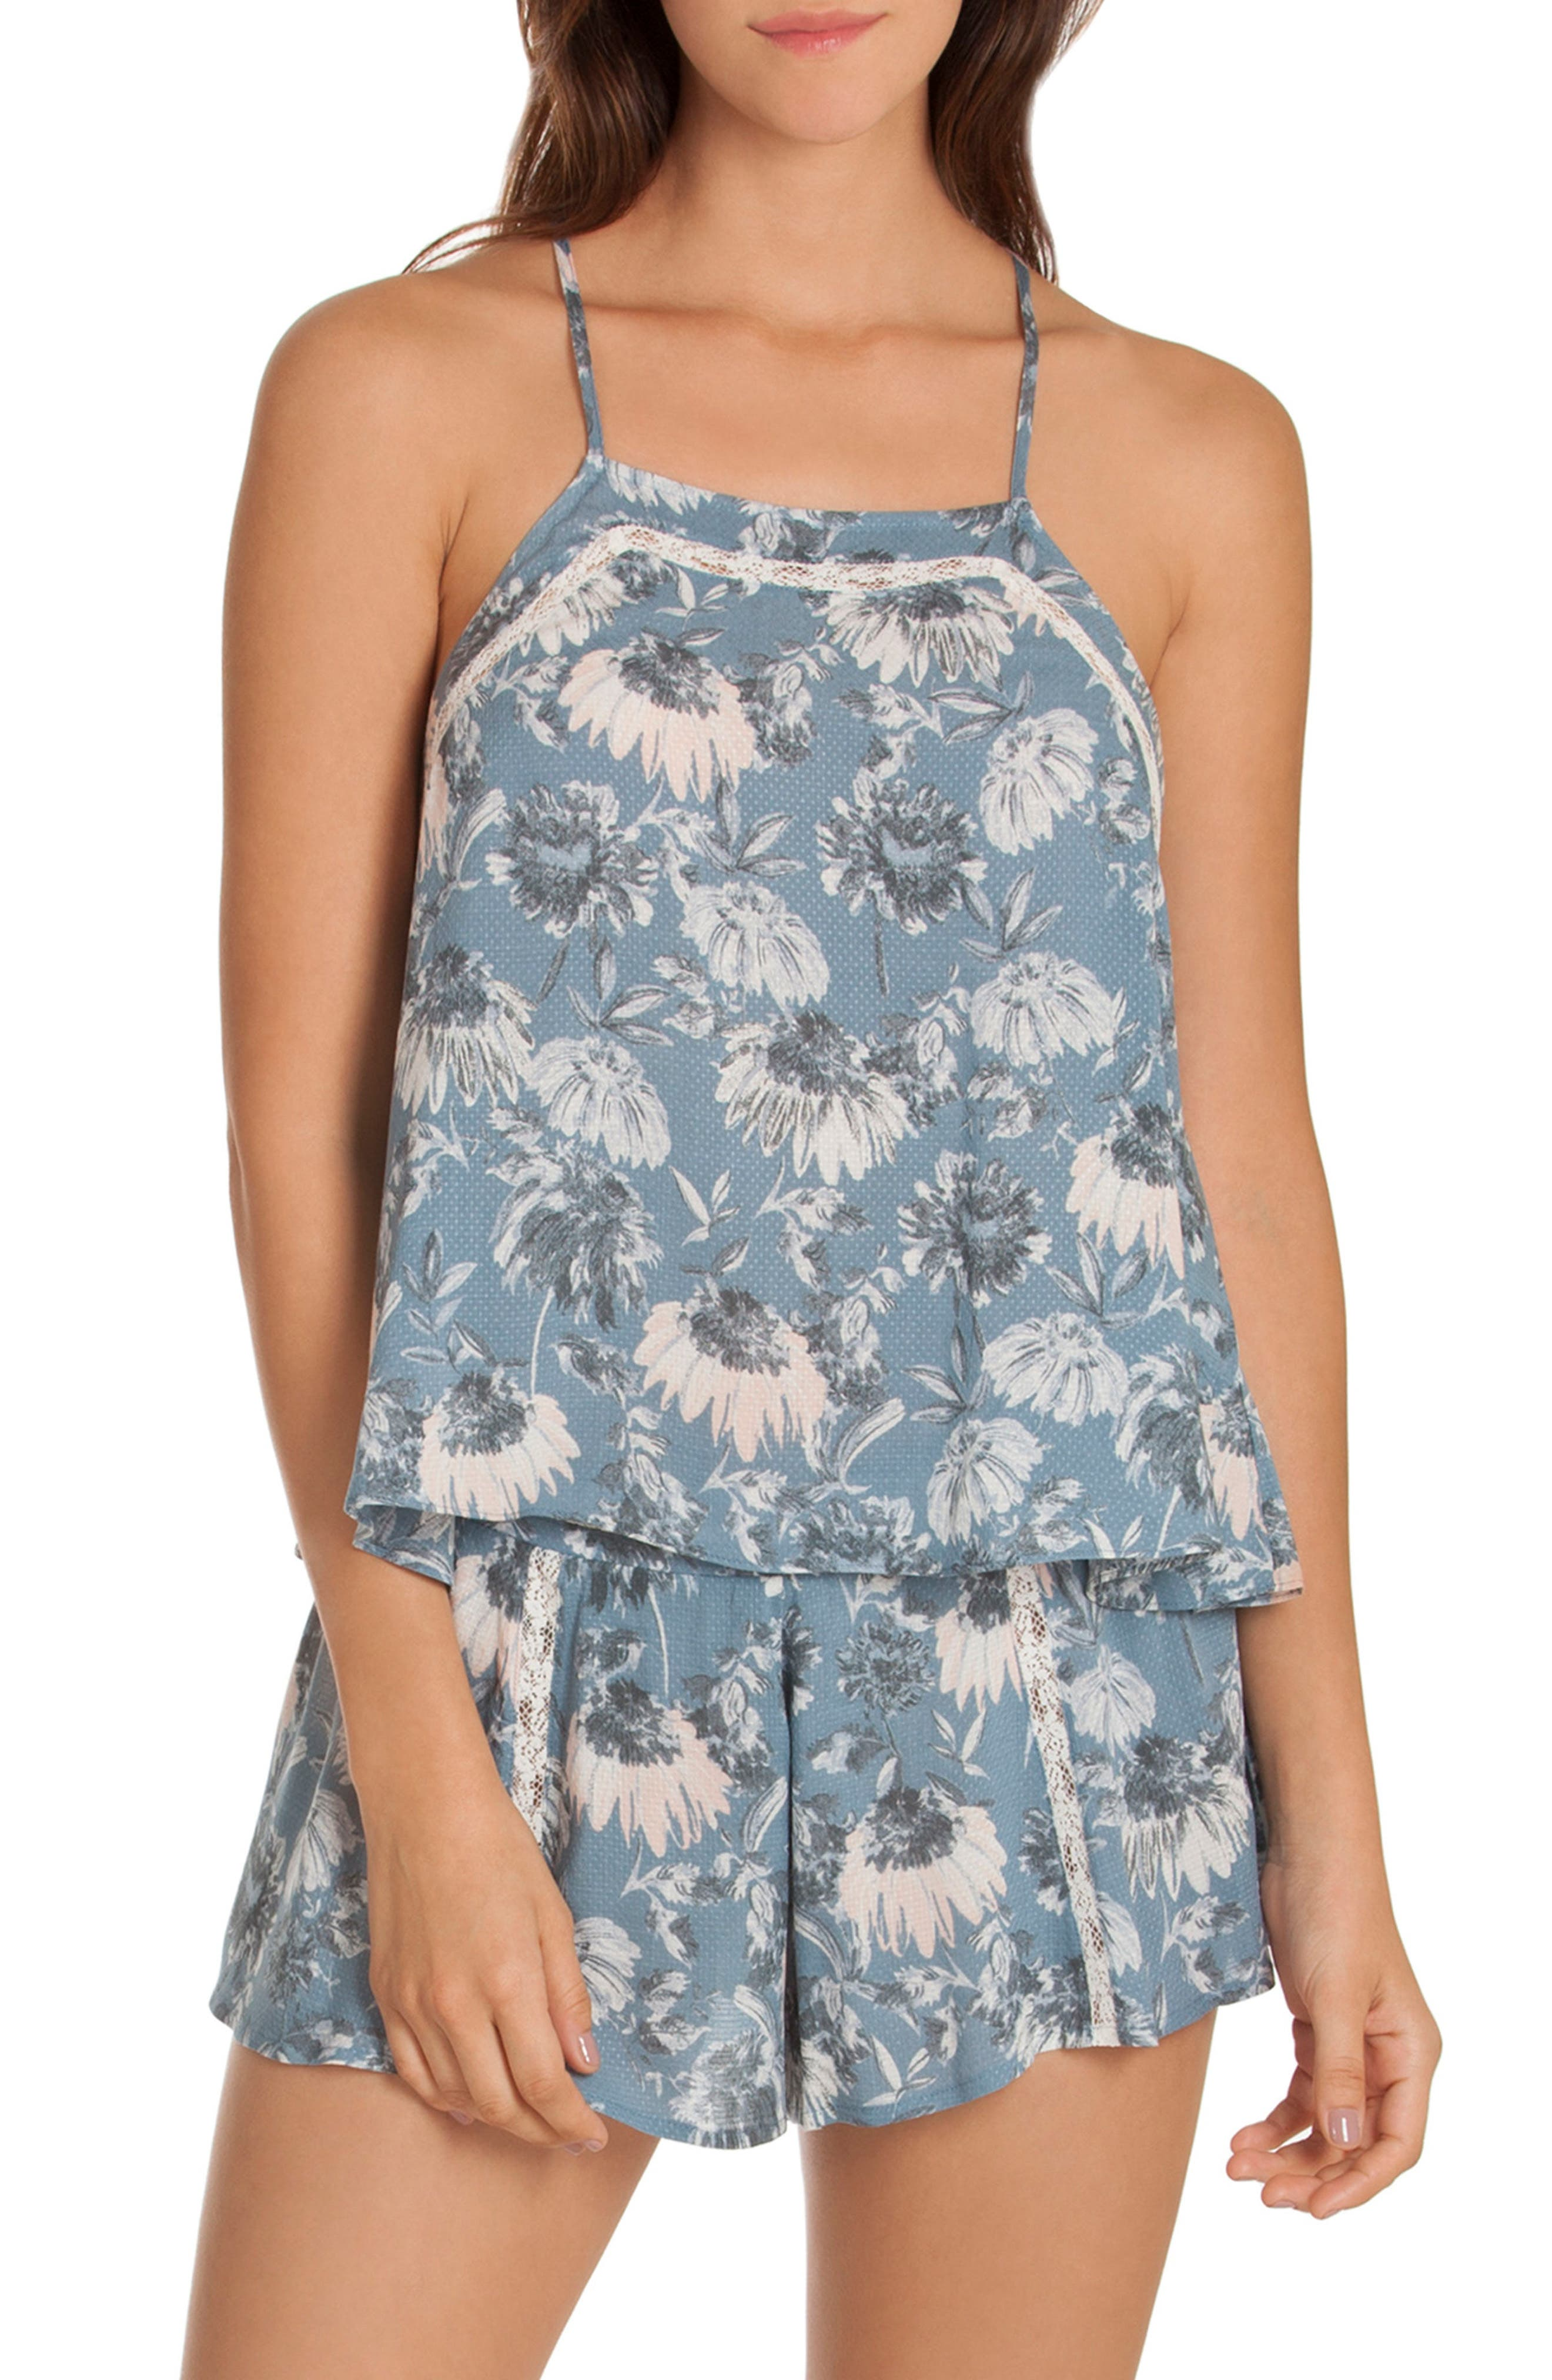 Midnight Bakery Floral Camisole